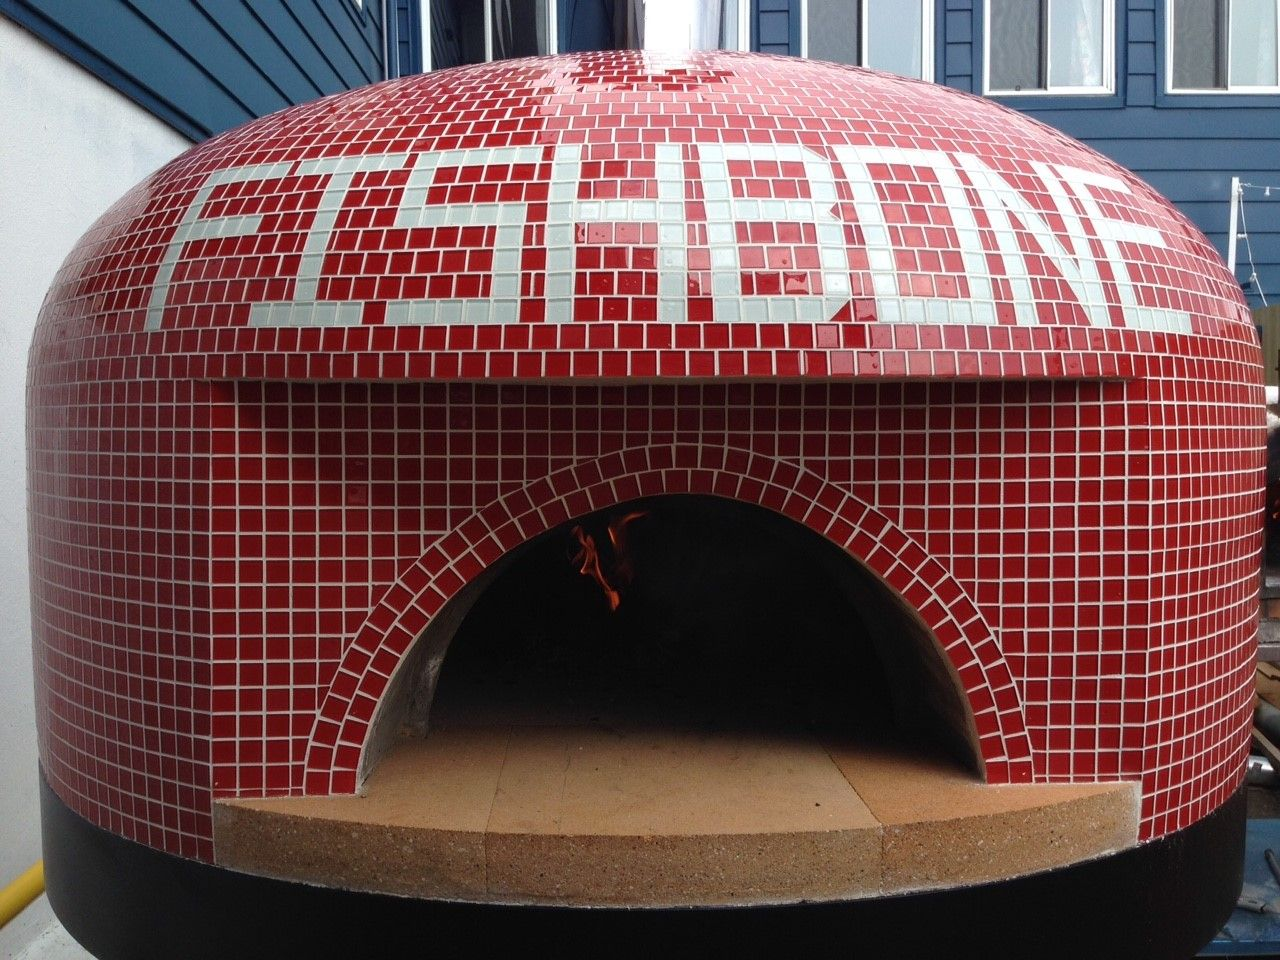 Pizza Oven Brick Oven Wood Fired Pizza Ovens Pizza Oven Wood Fired Pizza Oven Pizza Oven Outdoor